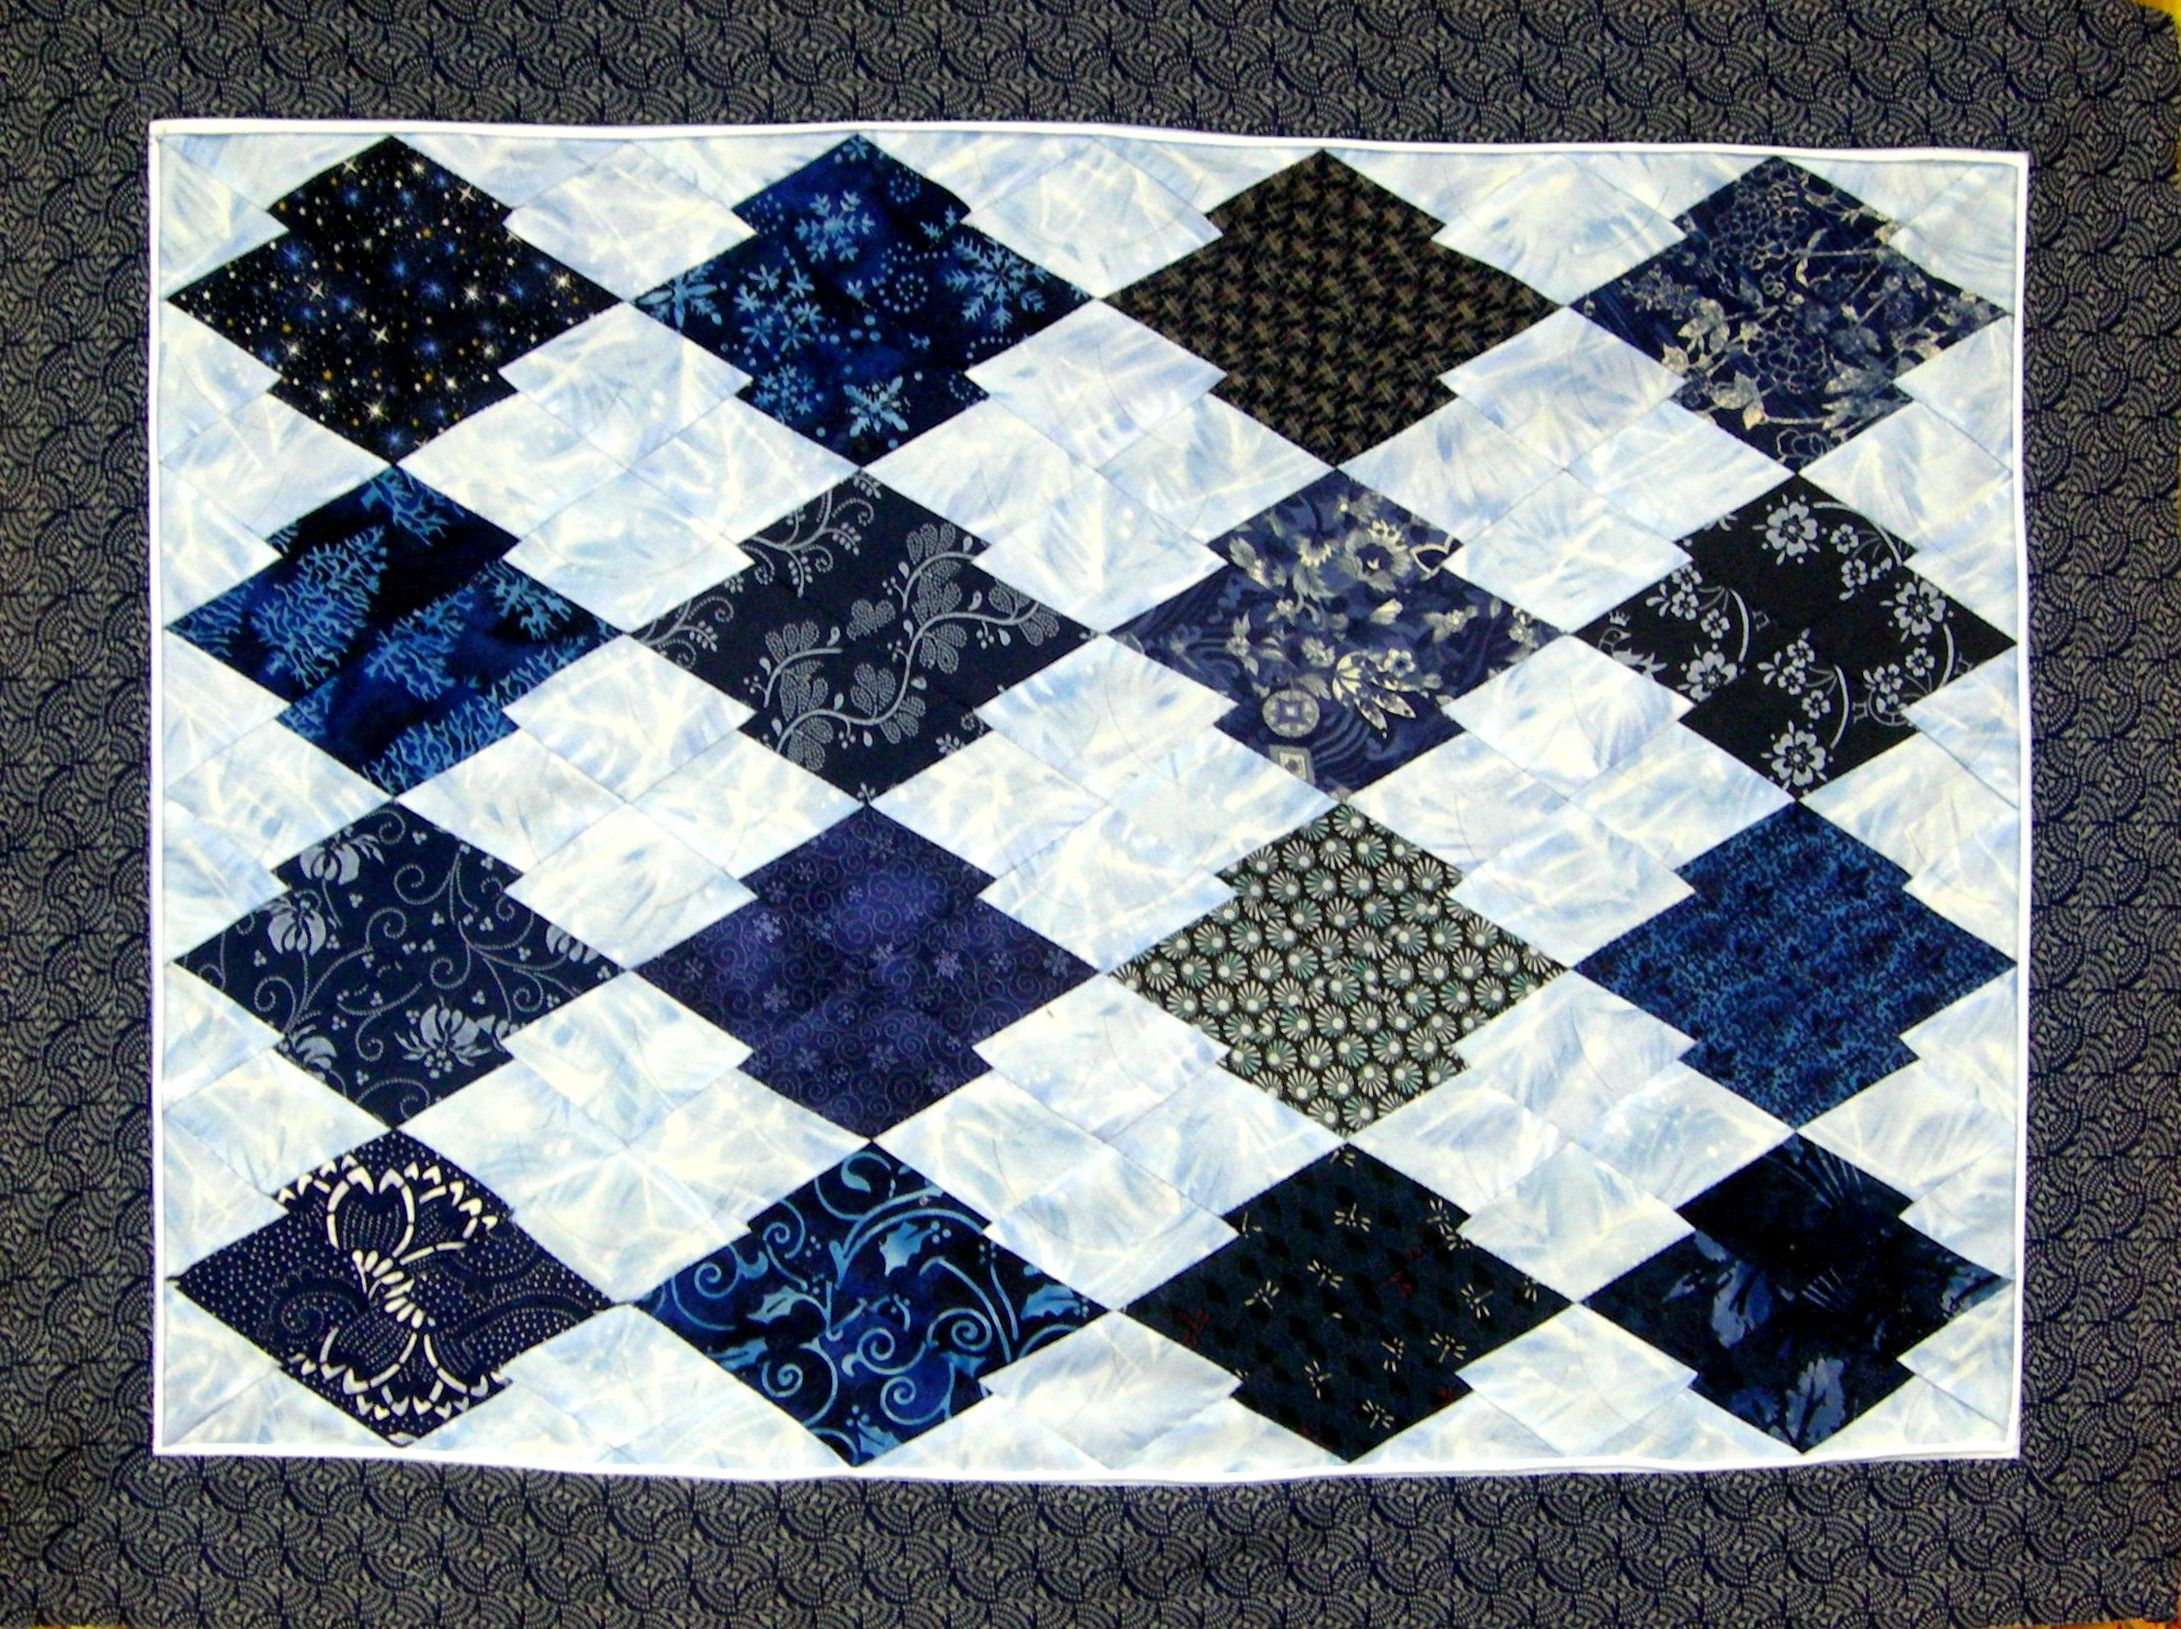 Japanese Puzzle Quilt | Quilts twister/japanese puzzle | Pinterest ... : japanese style quilts - Adamdwight.com